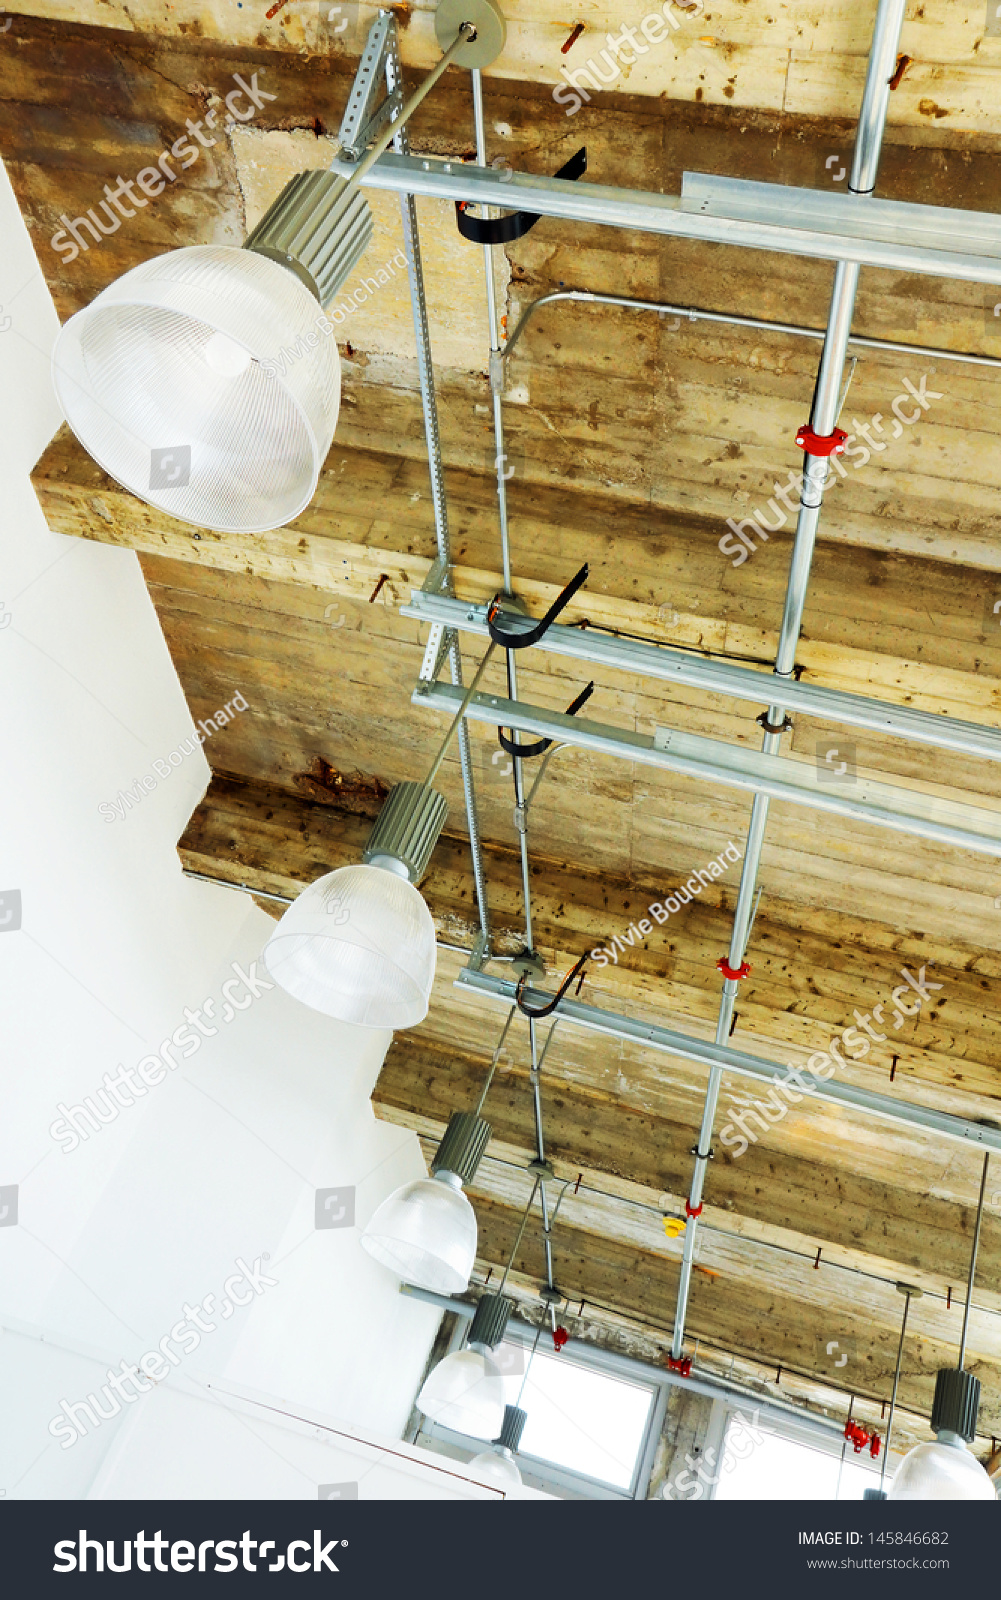 Modern Industrial Lighting With Ceiling'S Exposed Hardware